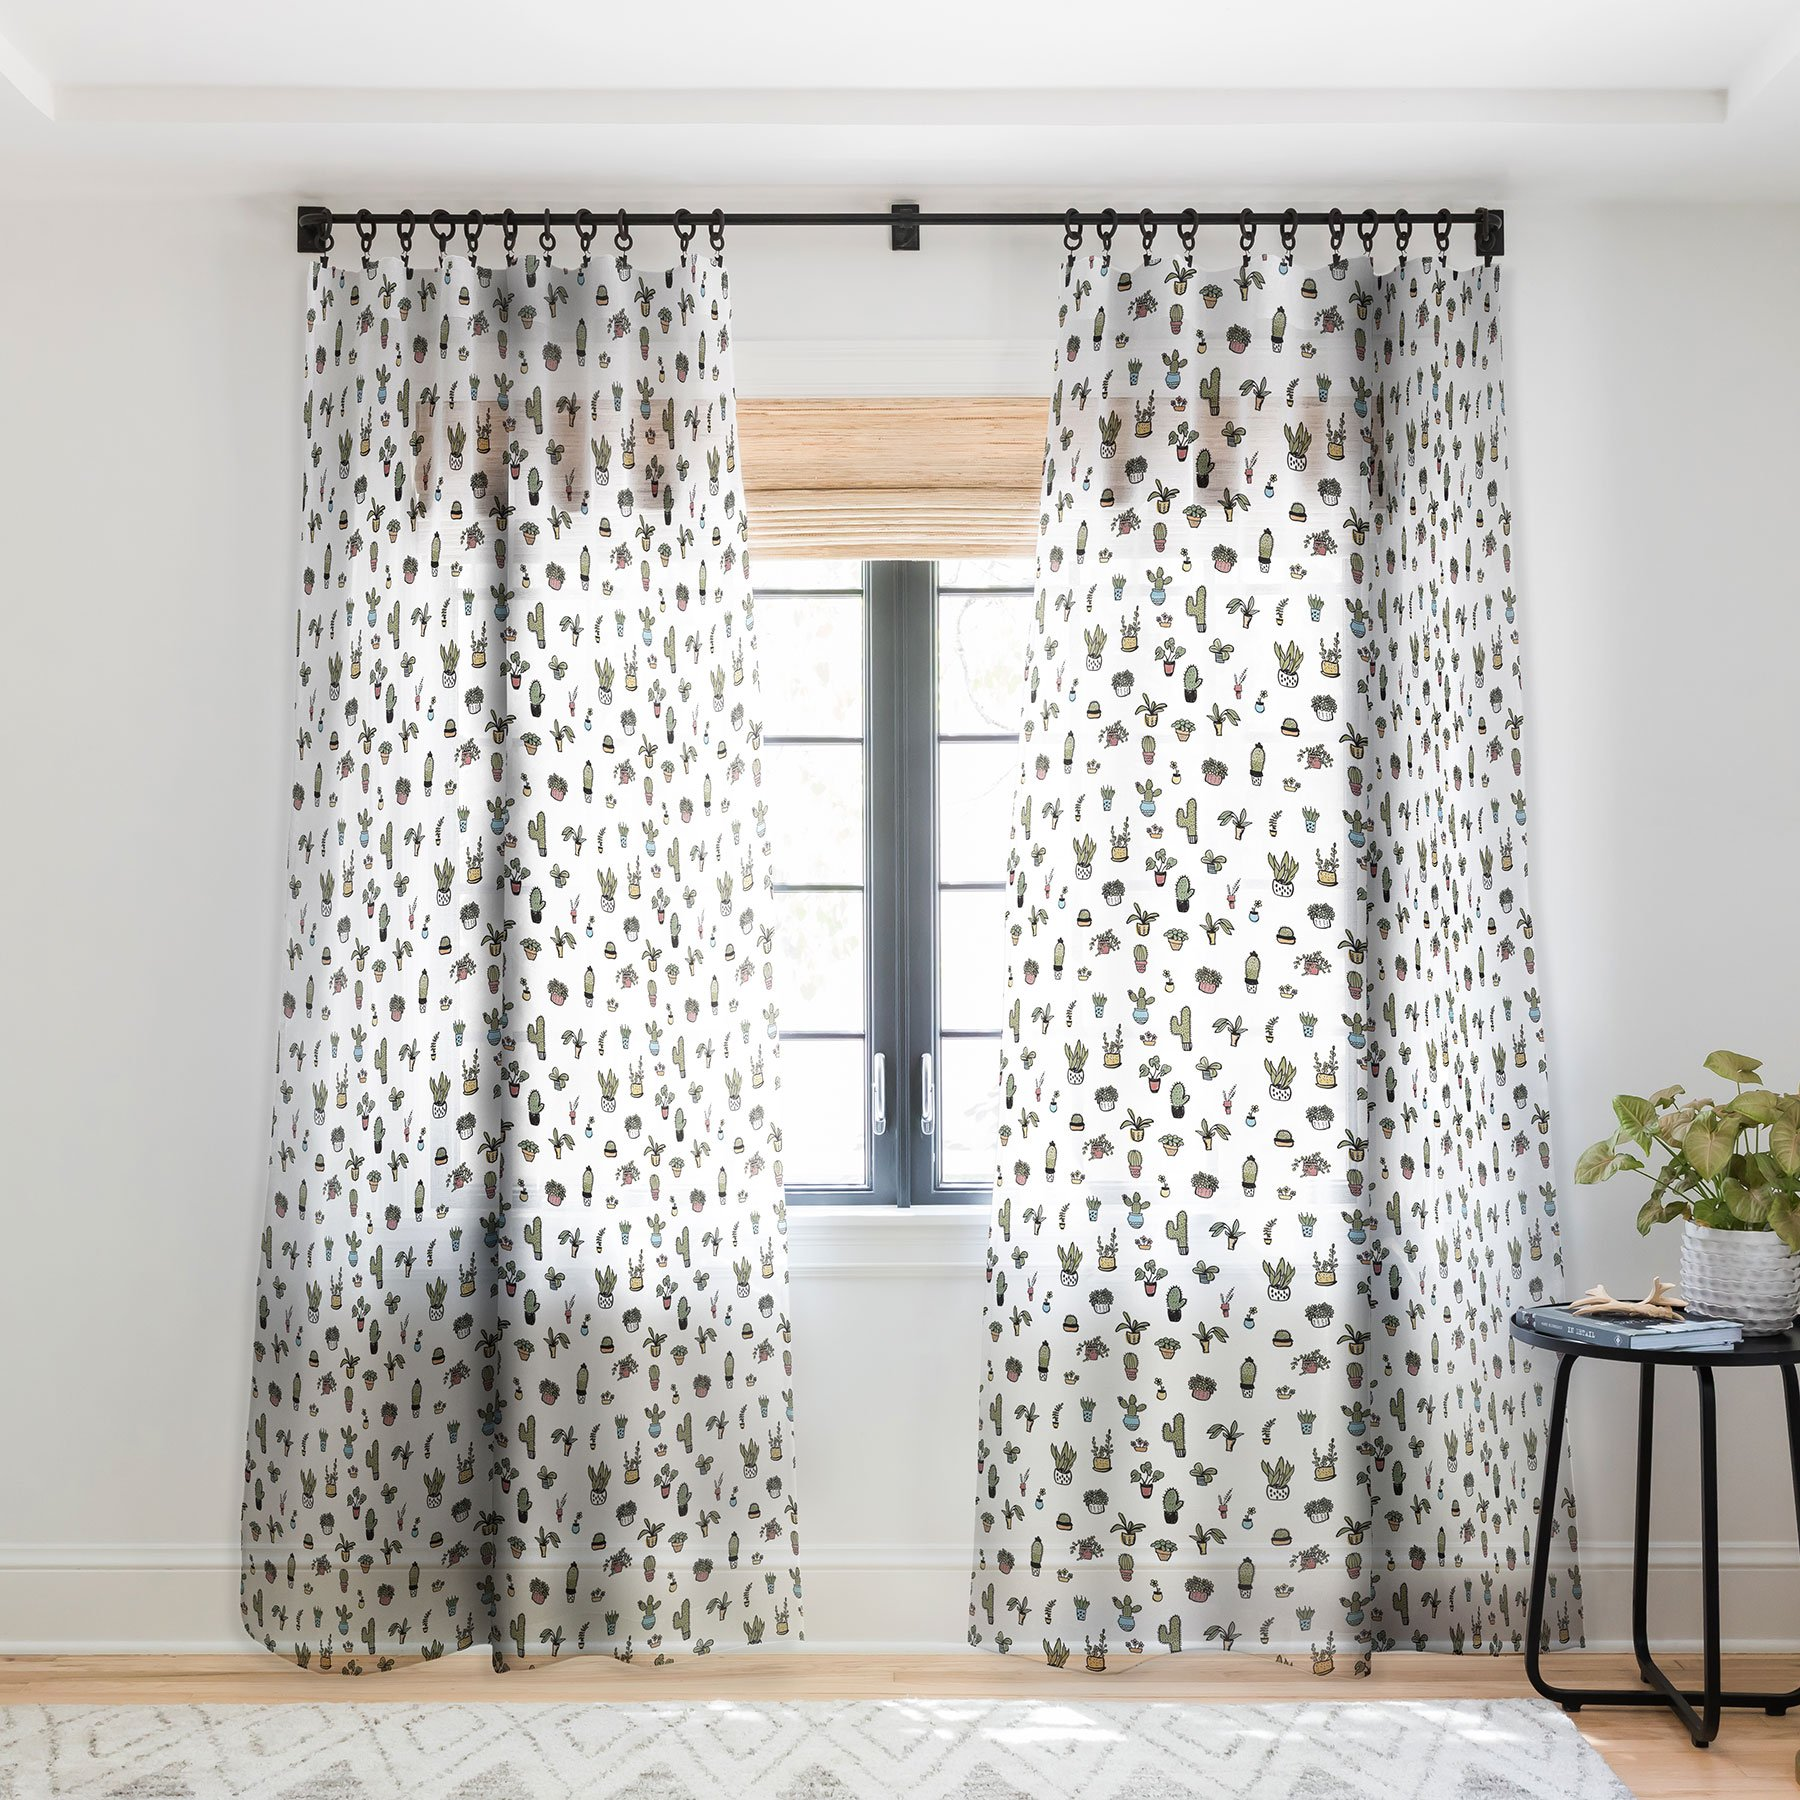 Plant Lady Curtain Panel by Wonder Forest